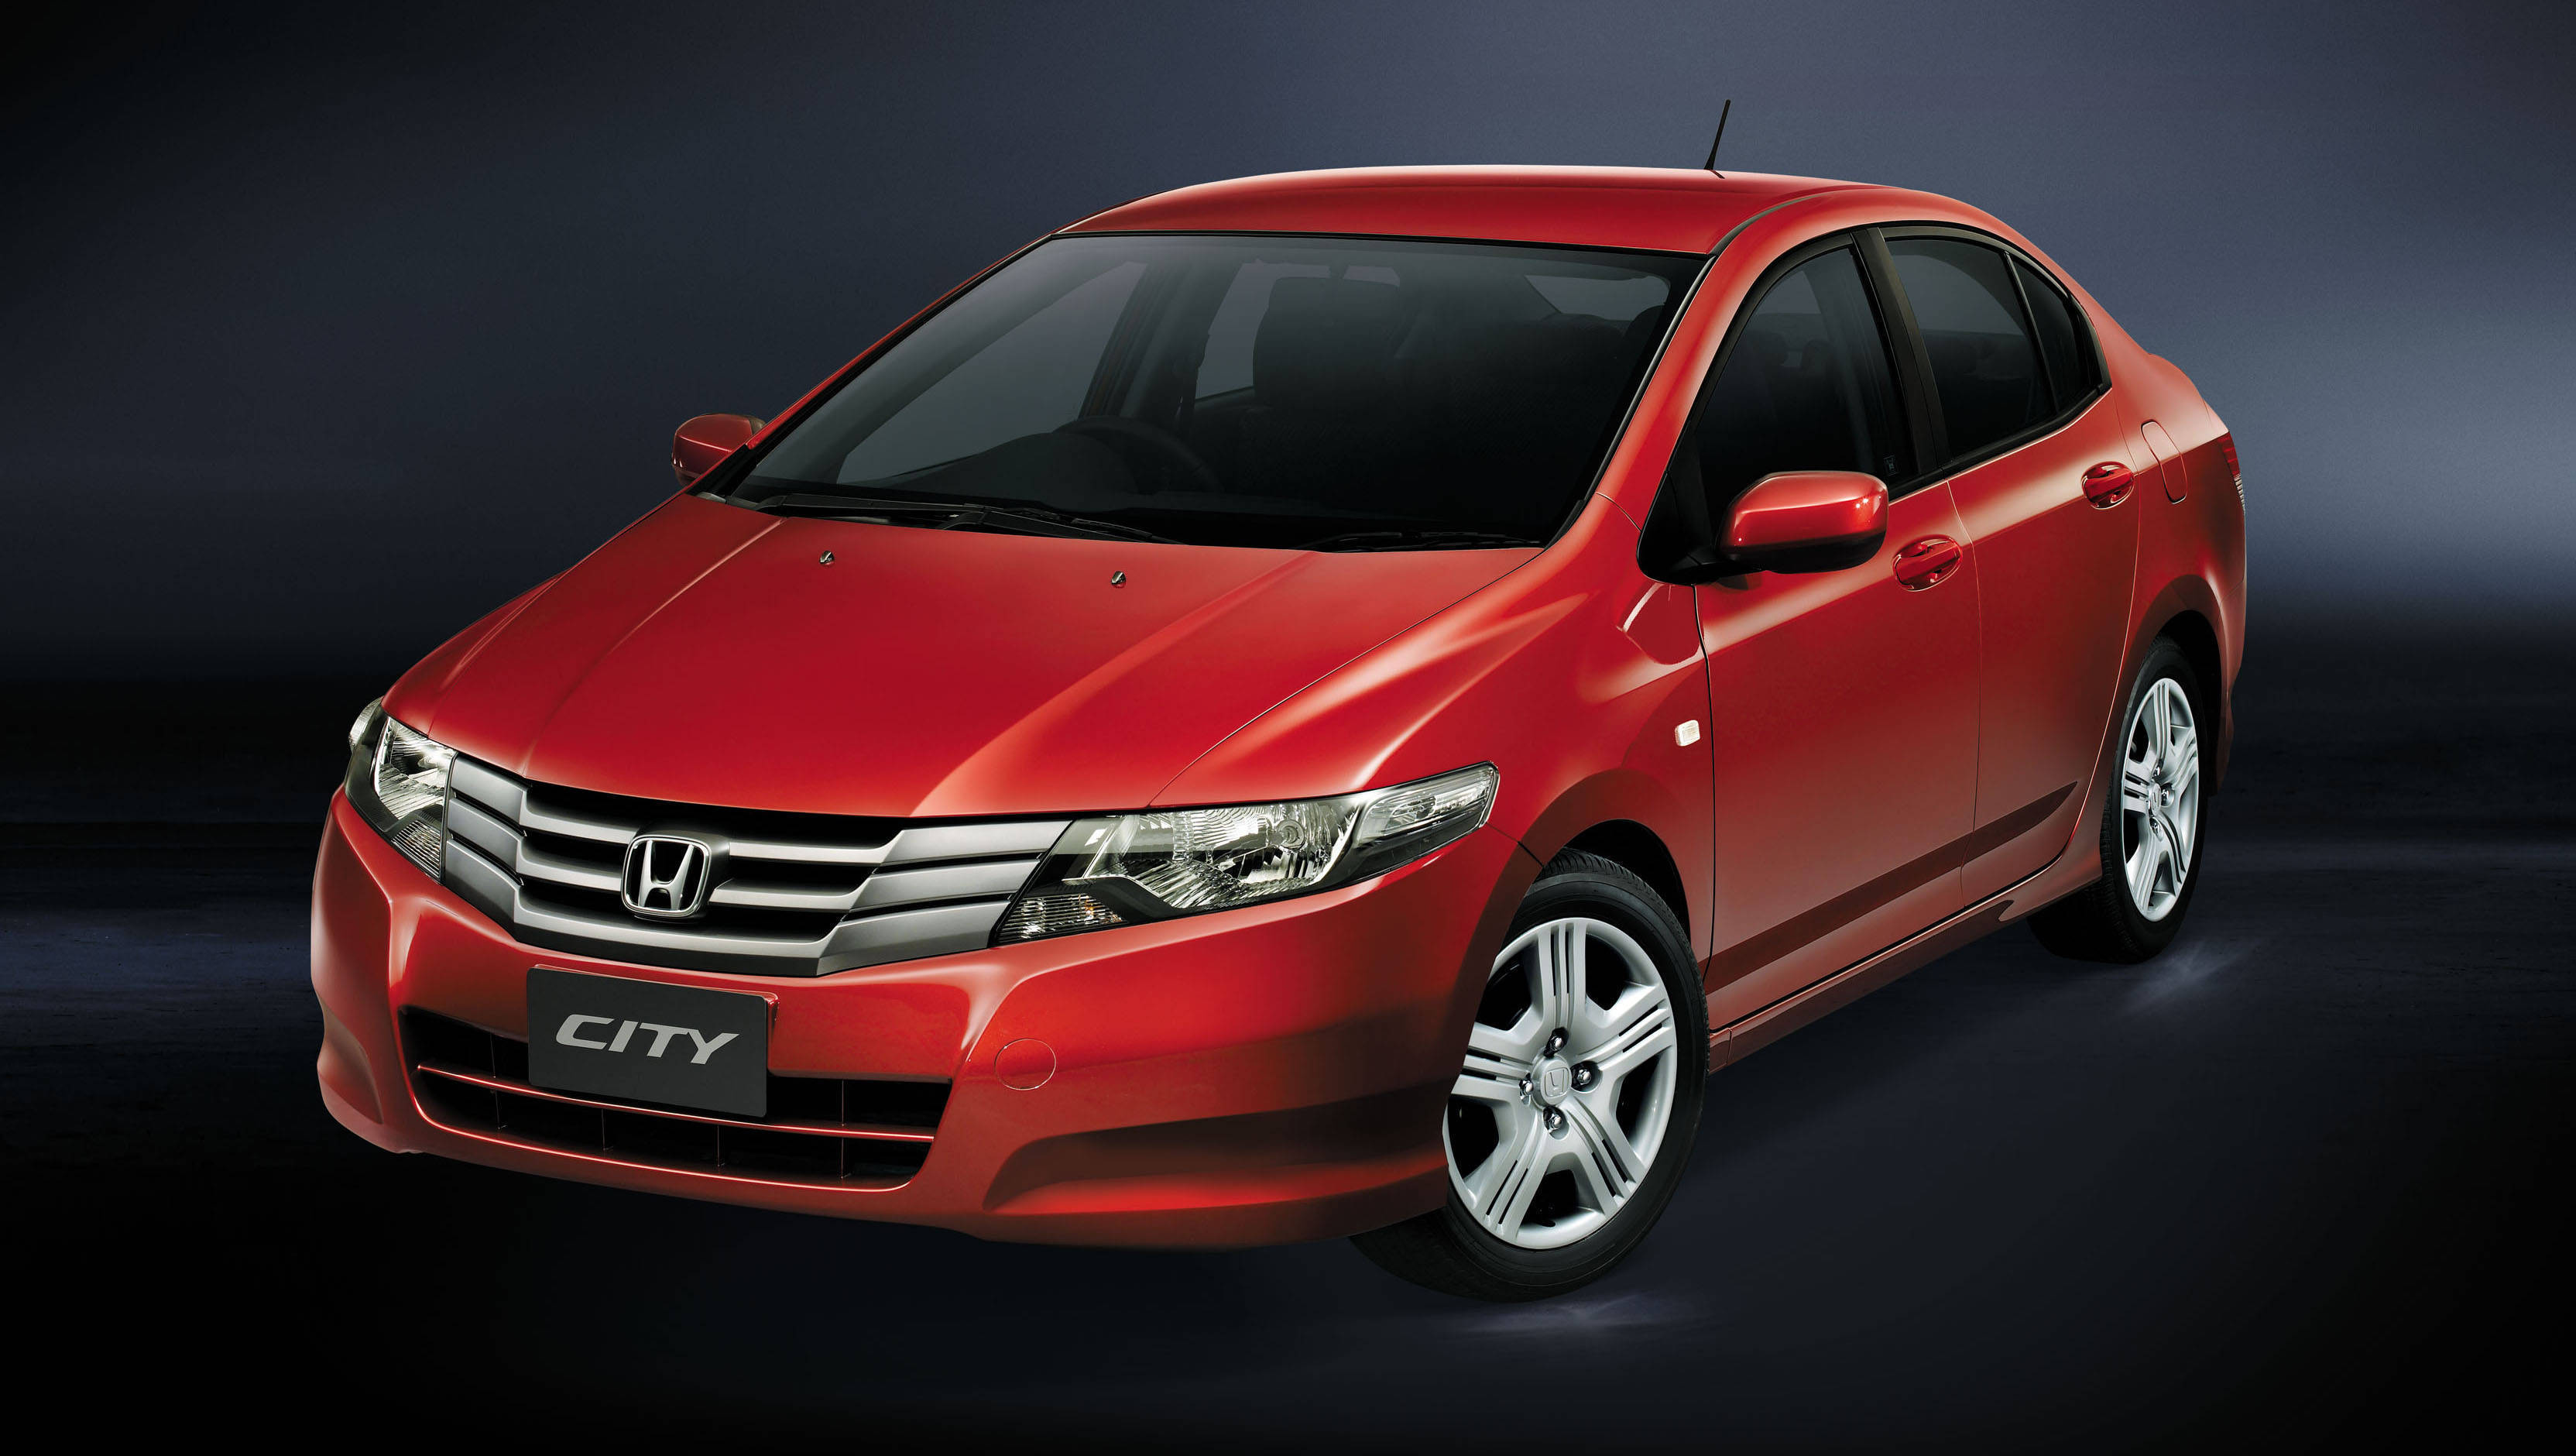 Honda India recalls 41,580 units of Jazz, City, Civic and Accord to replace faulty driver airbag